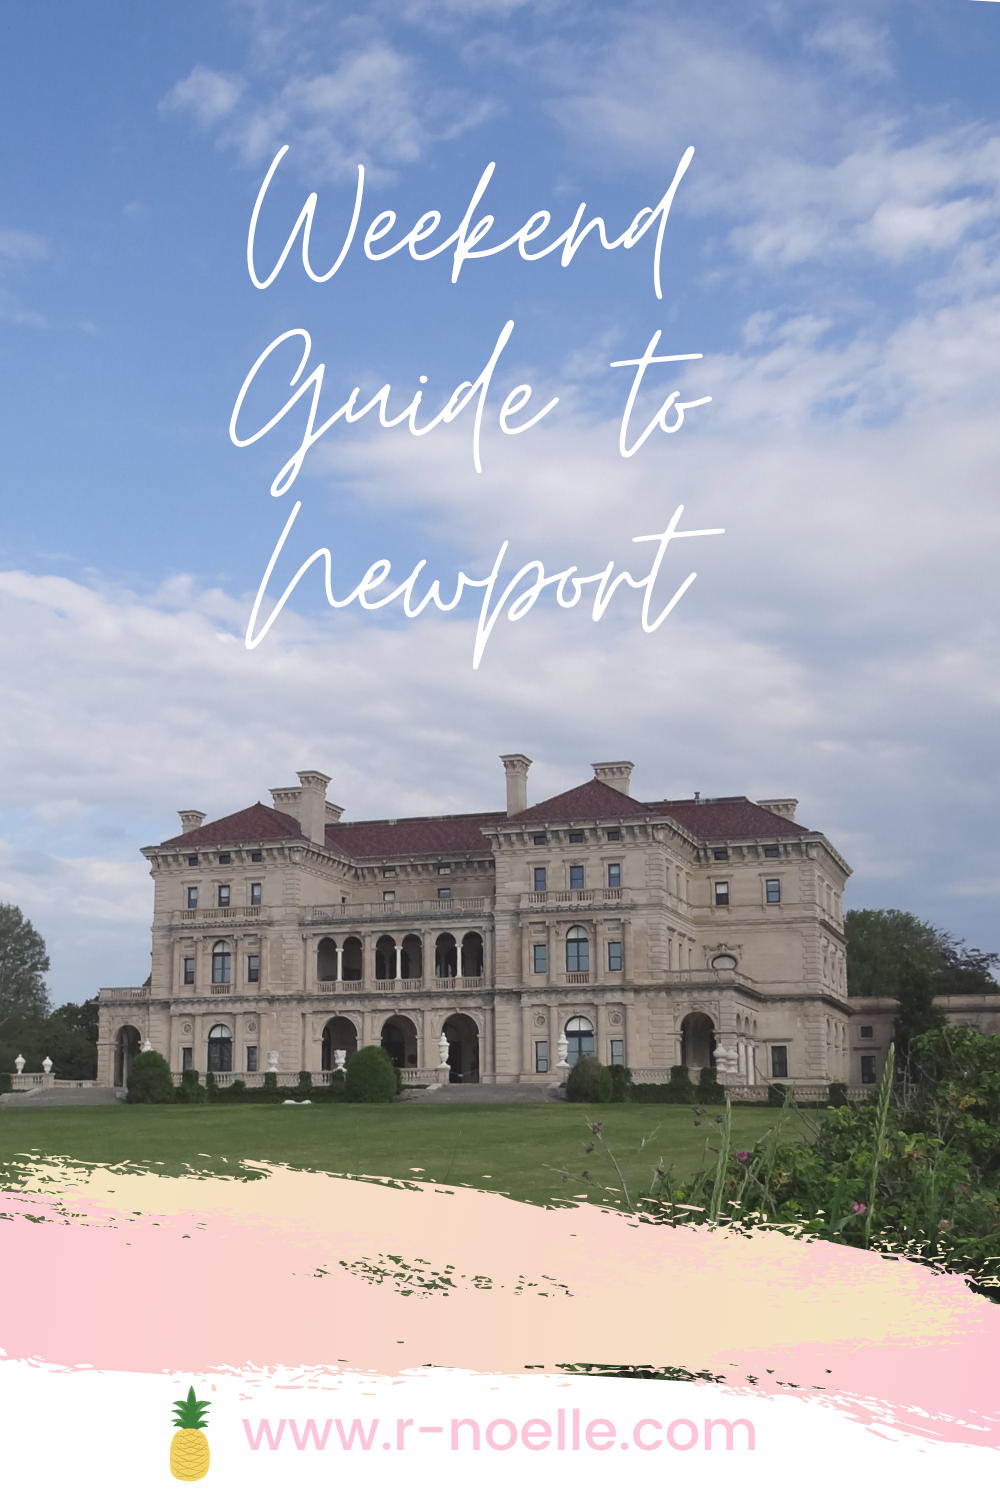 Newport is a beautiful town that is rich in history. If you're looking for a relaxing weekend getaway with girlfriends, this guide should help you plan your trip! Newport, Rhodes Island is wonderful! Newport mansions are getting to witness but the town is rich with history.